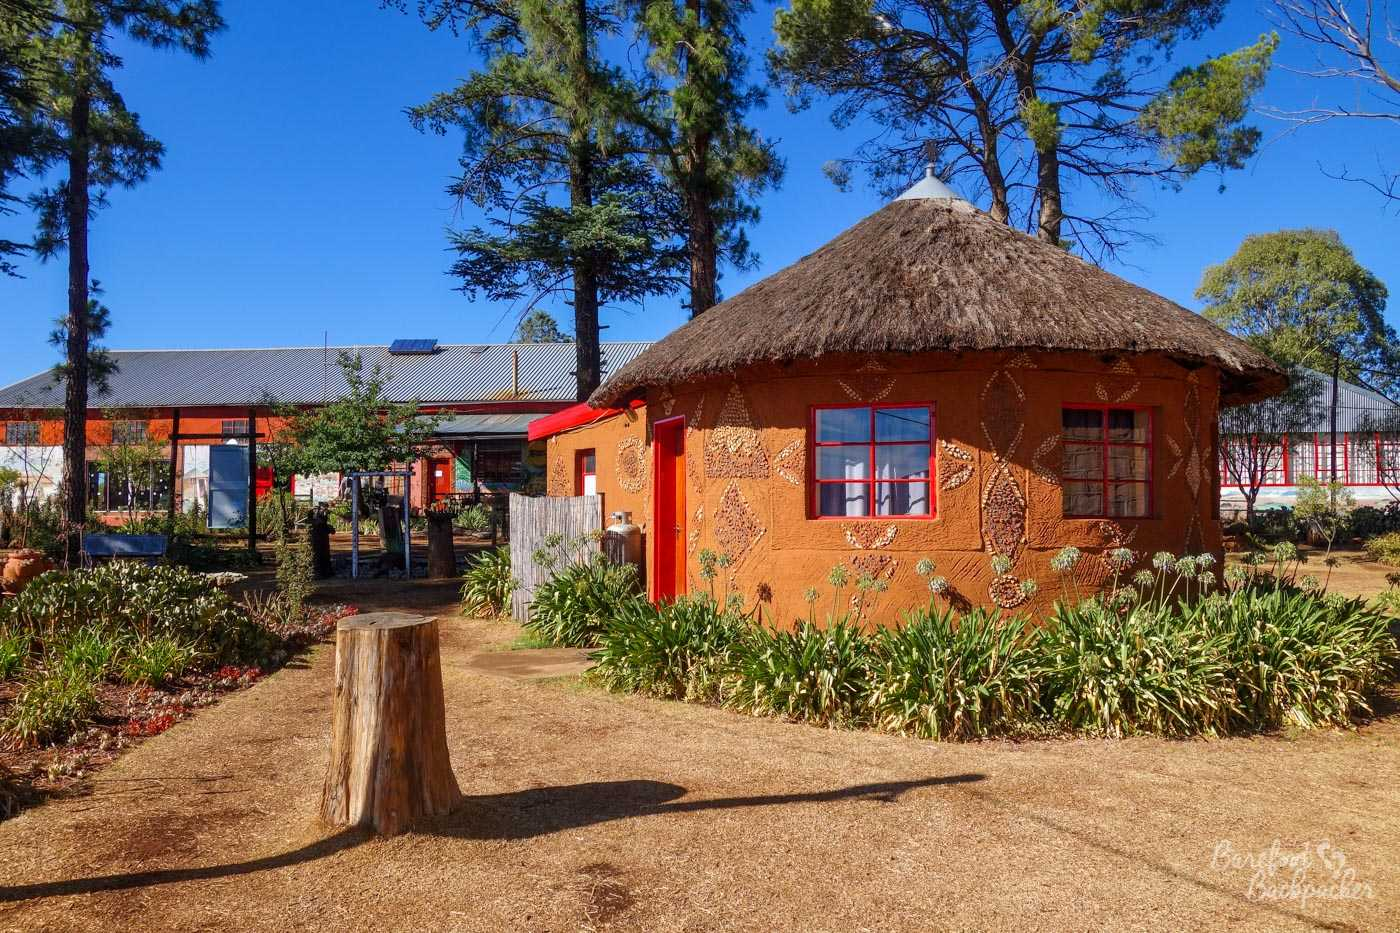 An example of the huts at Malealea Lodge that you can sleep in. I think this is the Basotho Hut, like the one I was in.